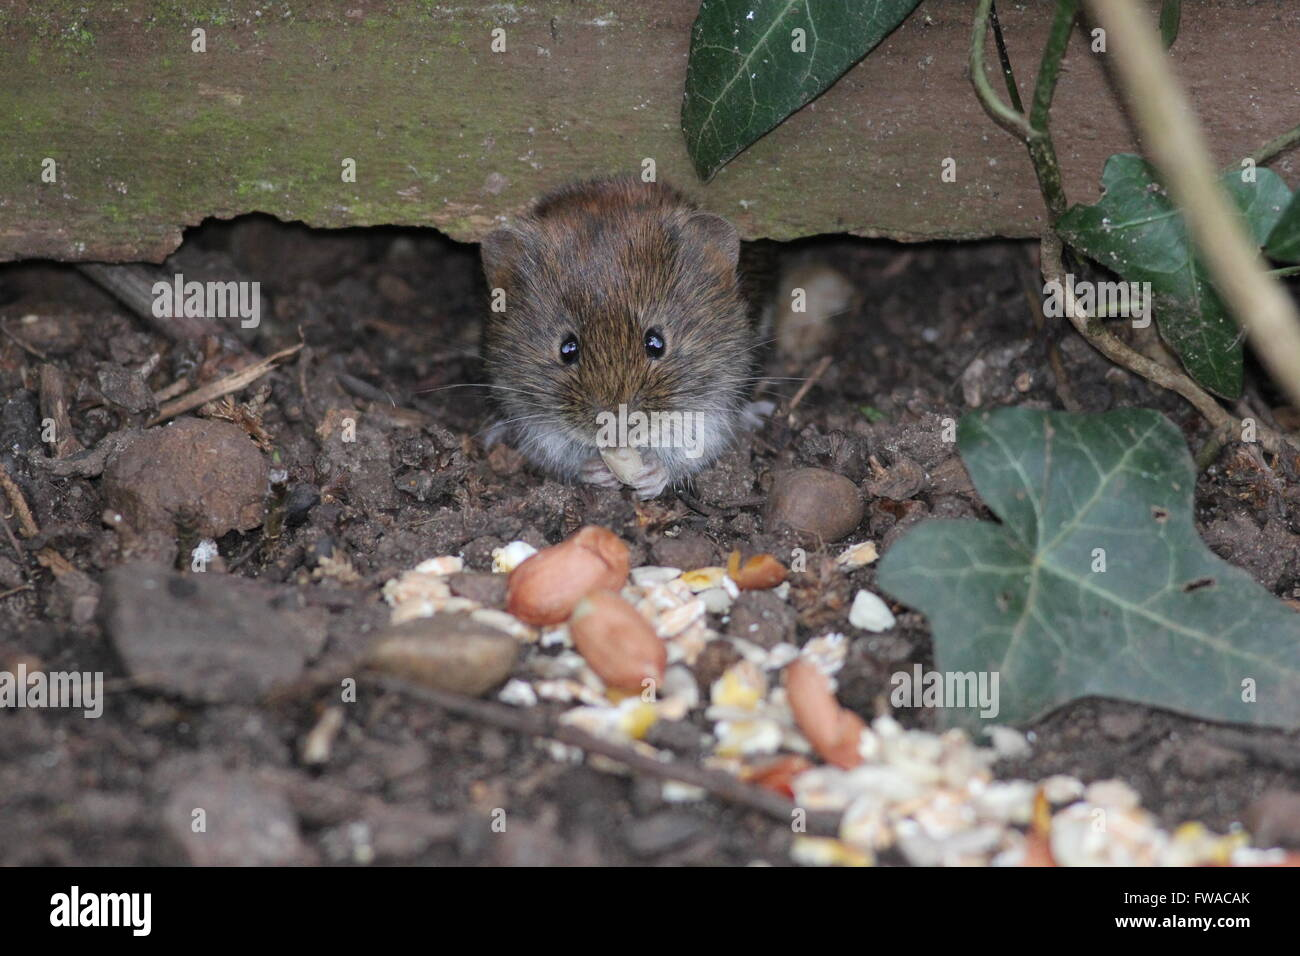 Bank vole peering from under a garden fence. - Stock Image